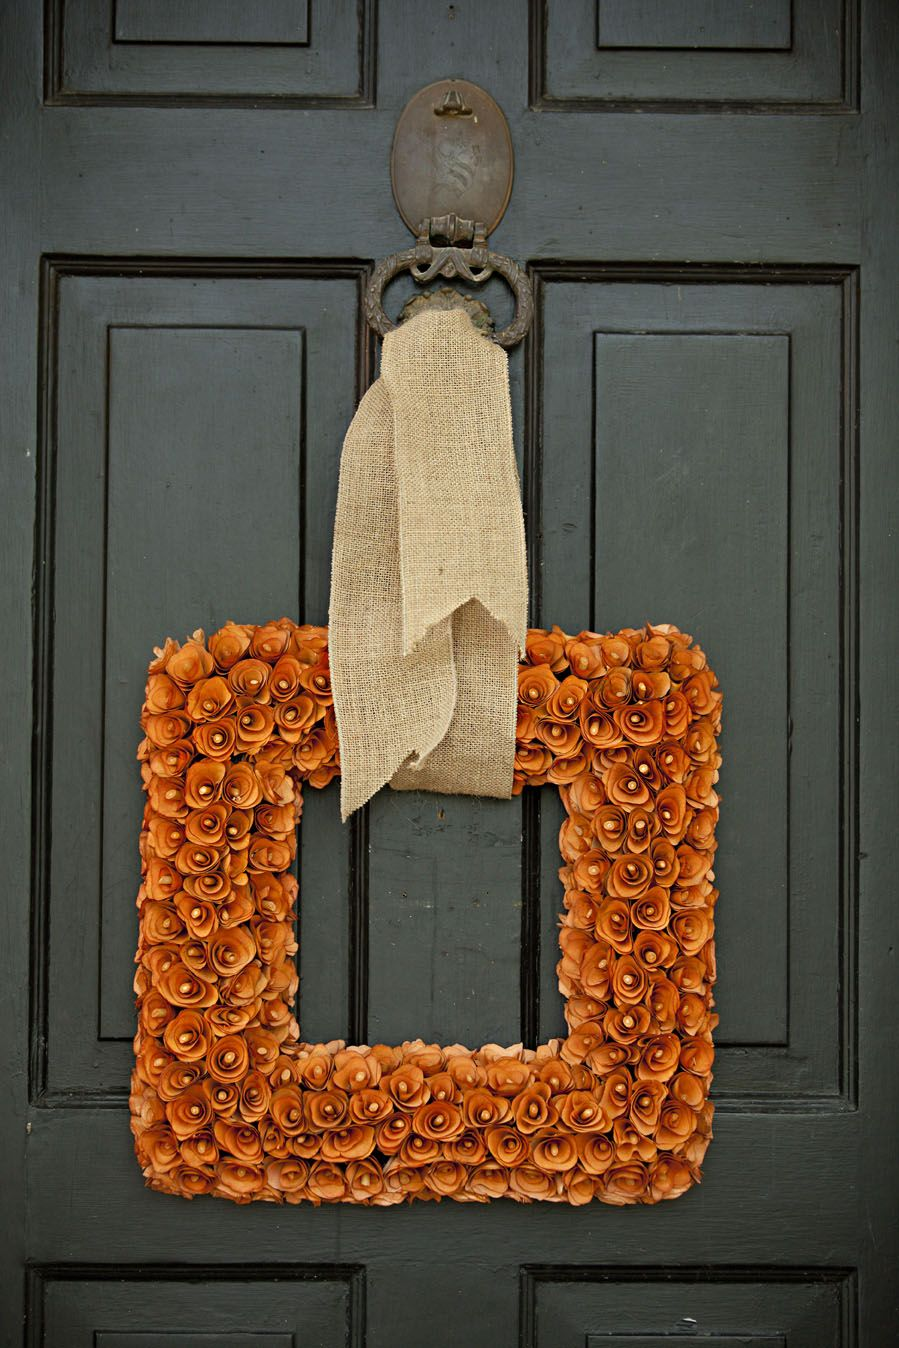 Delightful How To Make Door Wreaths | ... , Fall Door Wreaths Idea 3: